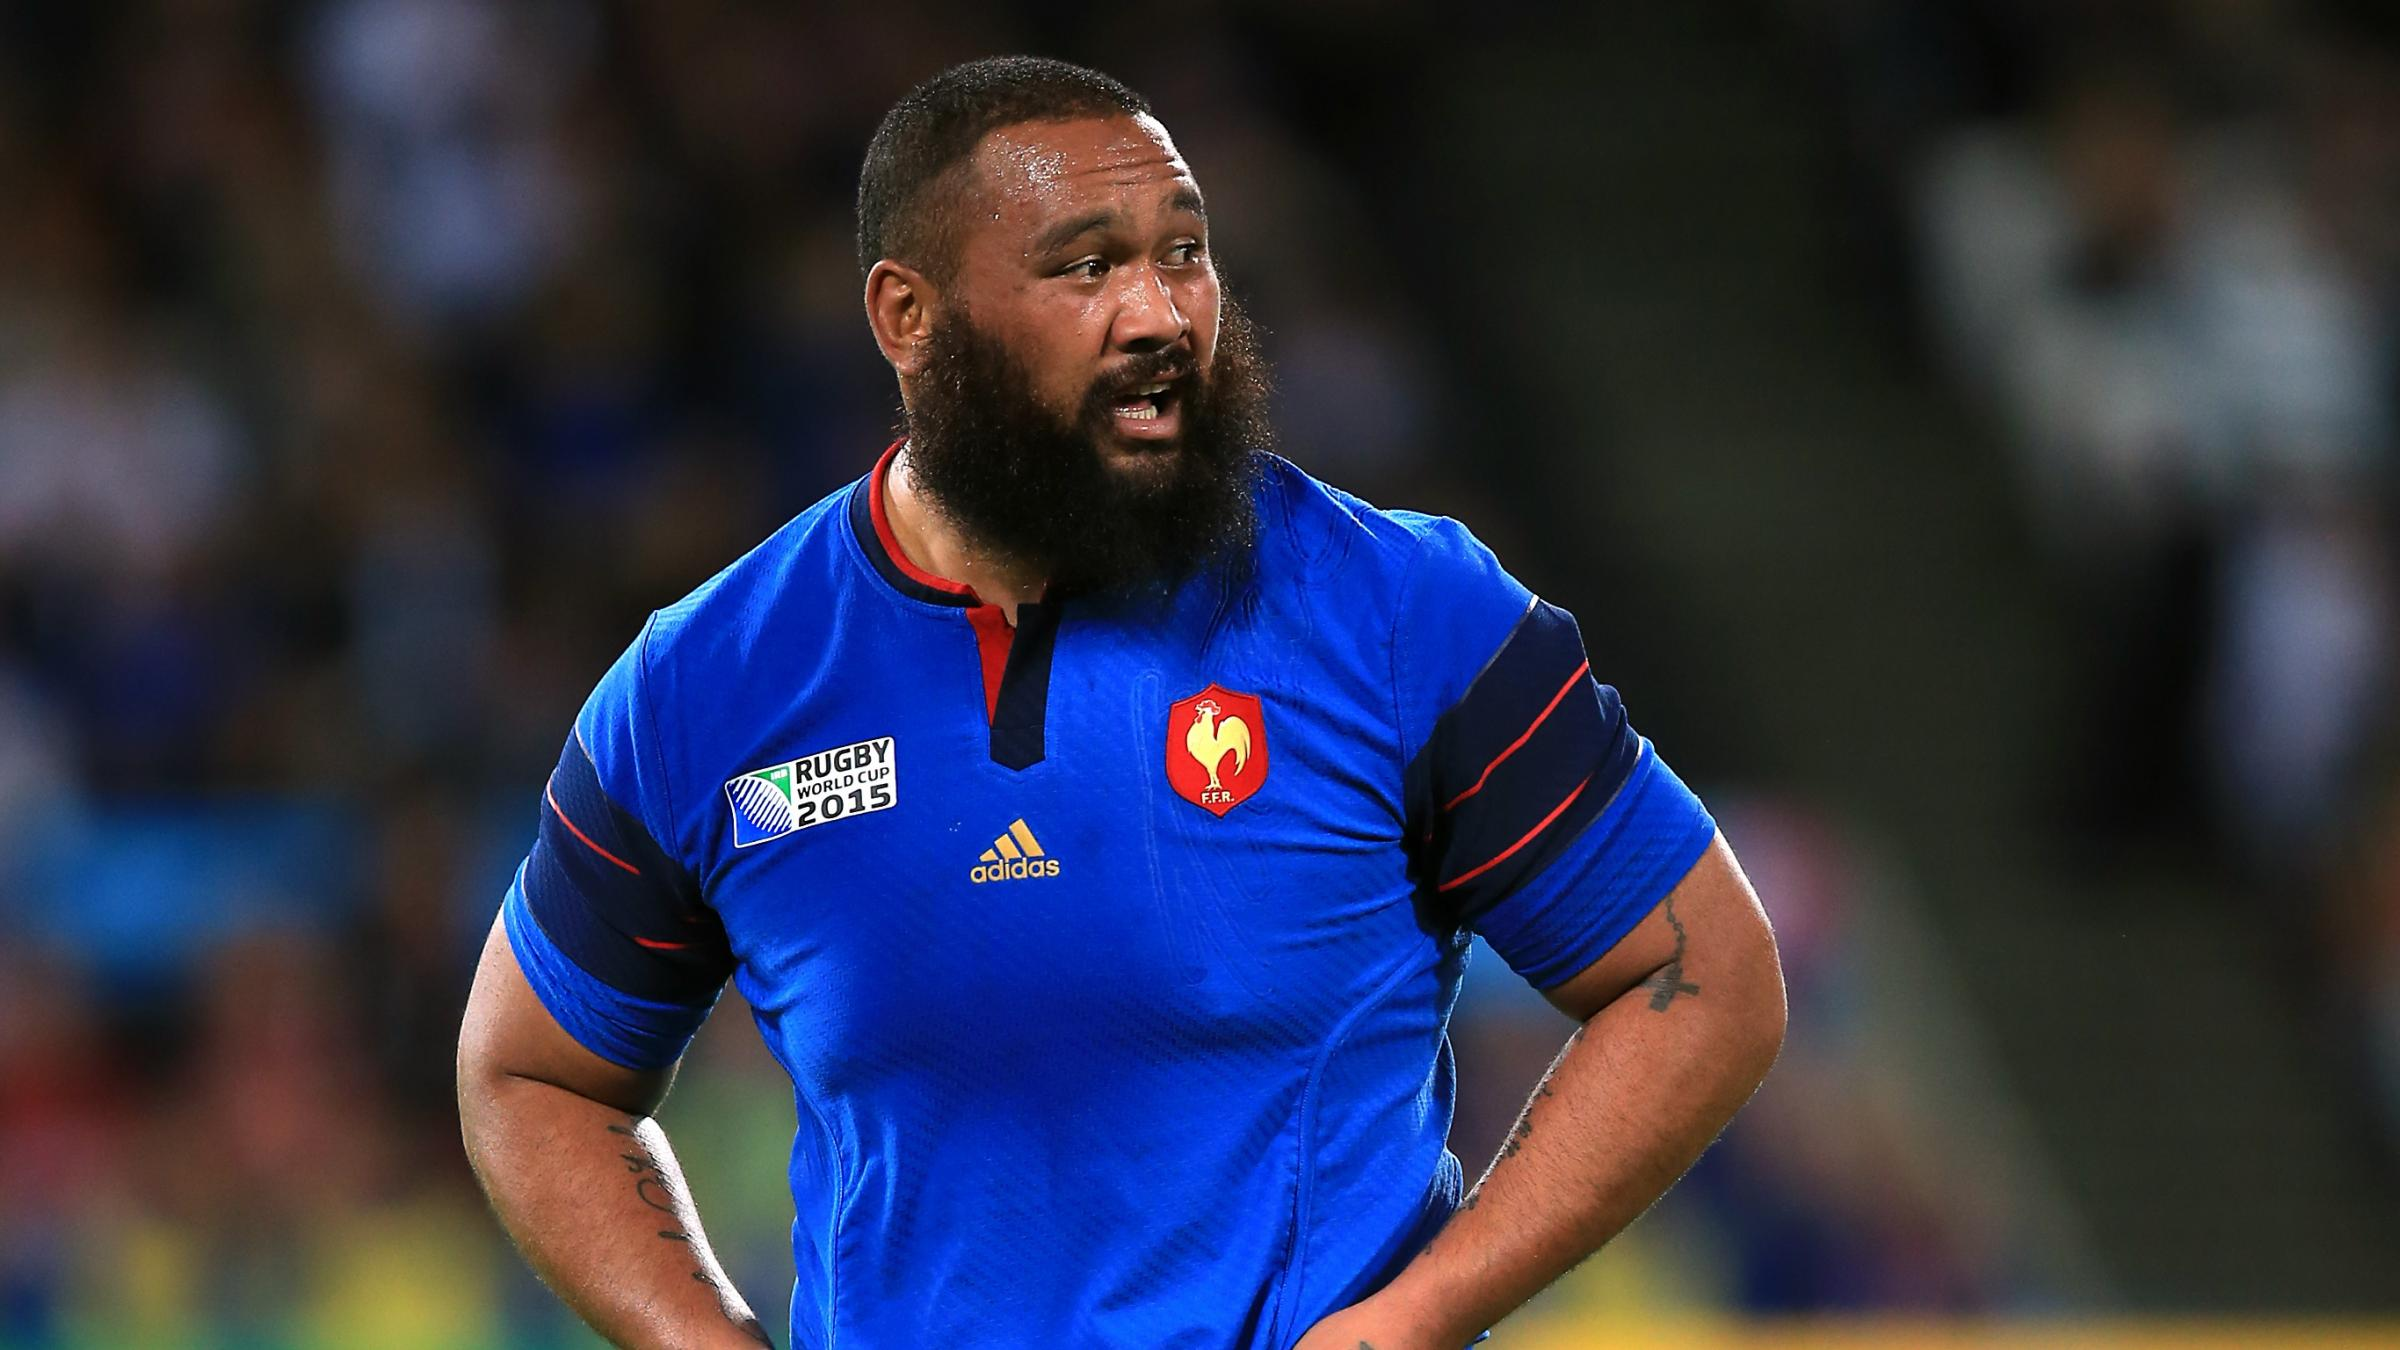 France reprimanded in replacement row against Wales